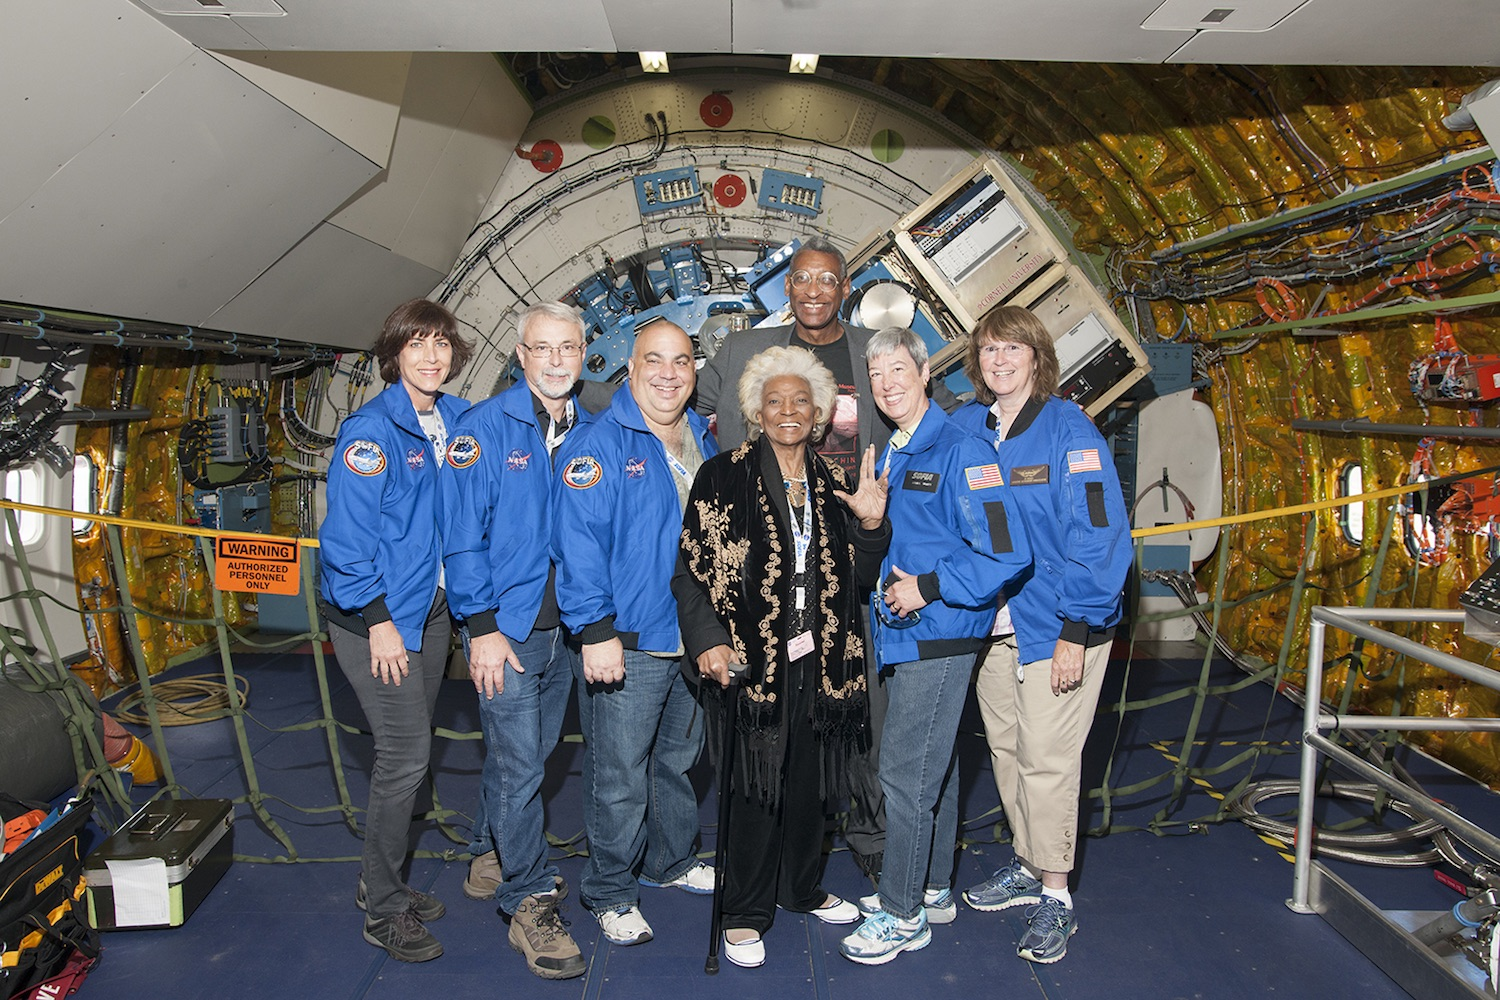 Nichelle Nichols played Lt. Uhura on  Star Trek  and got one step closer to space when she flew on Nasa's Sofia flying observatory with a team of science educators.  Credit:  Nasa/Carla Thomas